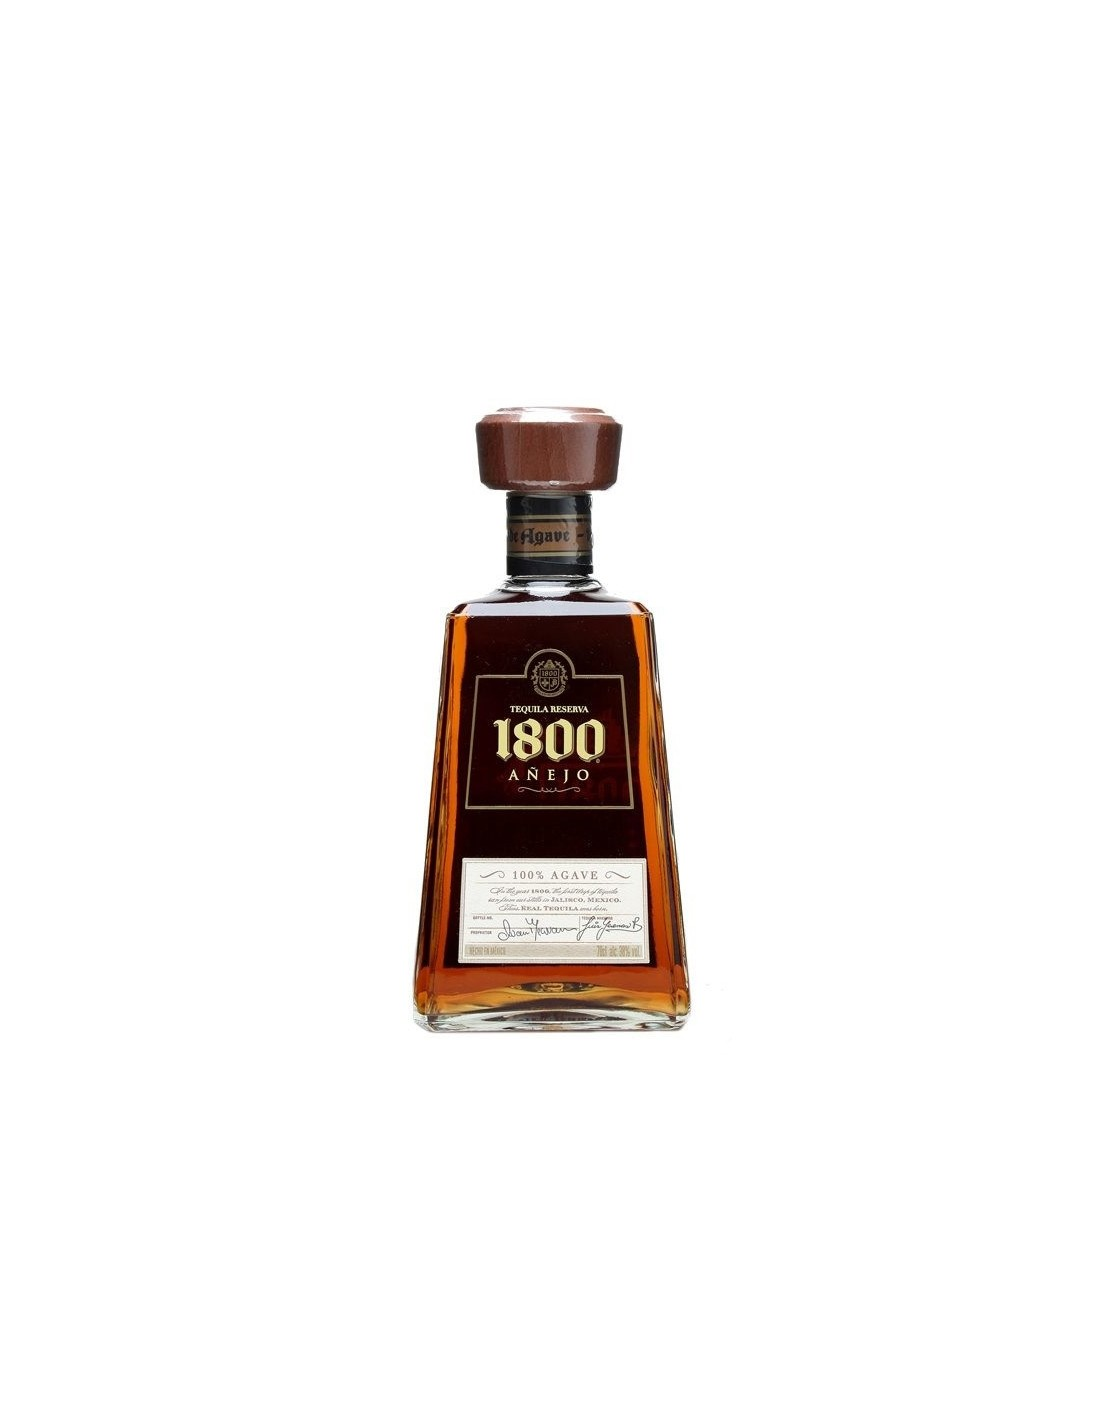 Tequila aurie 1800 Reserva Anejo 0.7L, 38% alc., Mexic